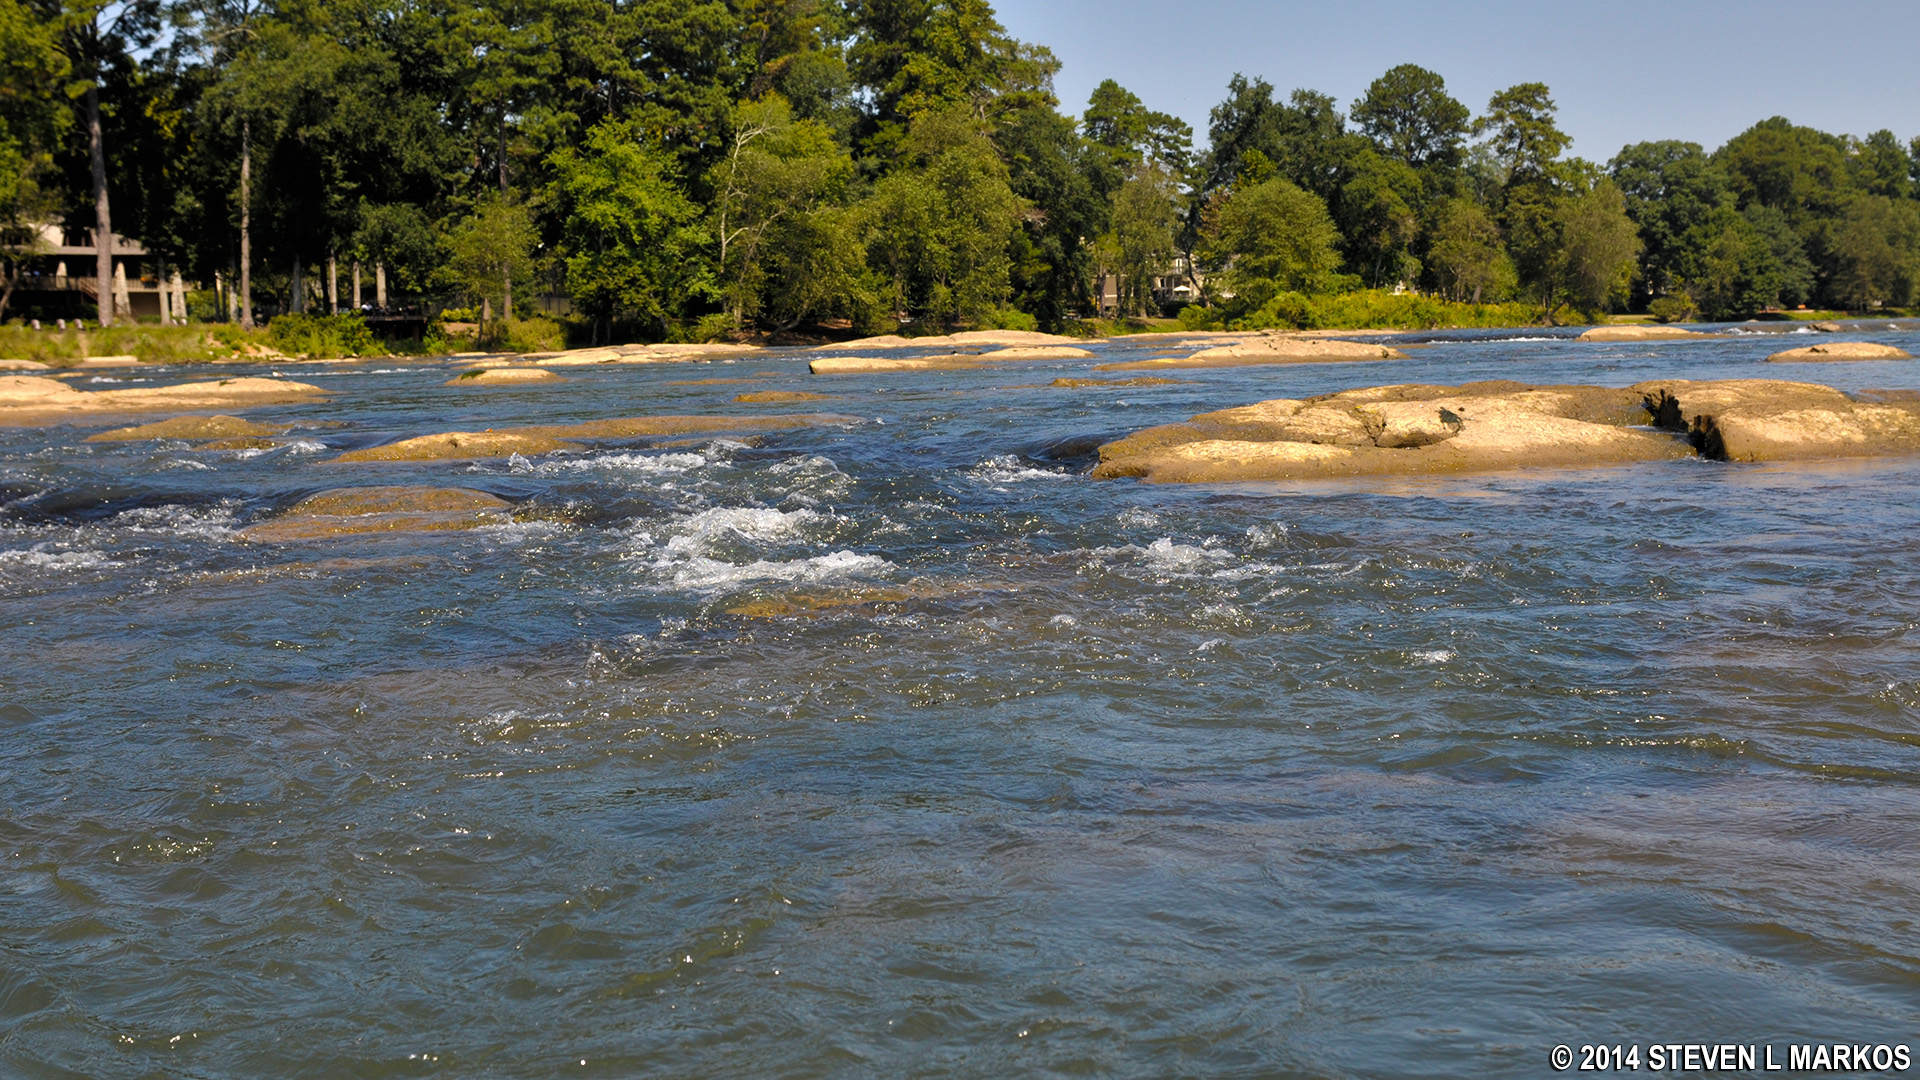 Powers island chattahoochee nra